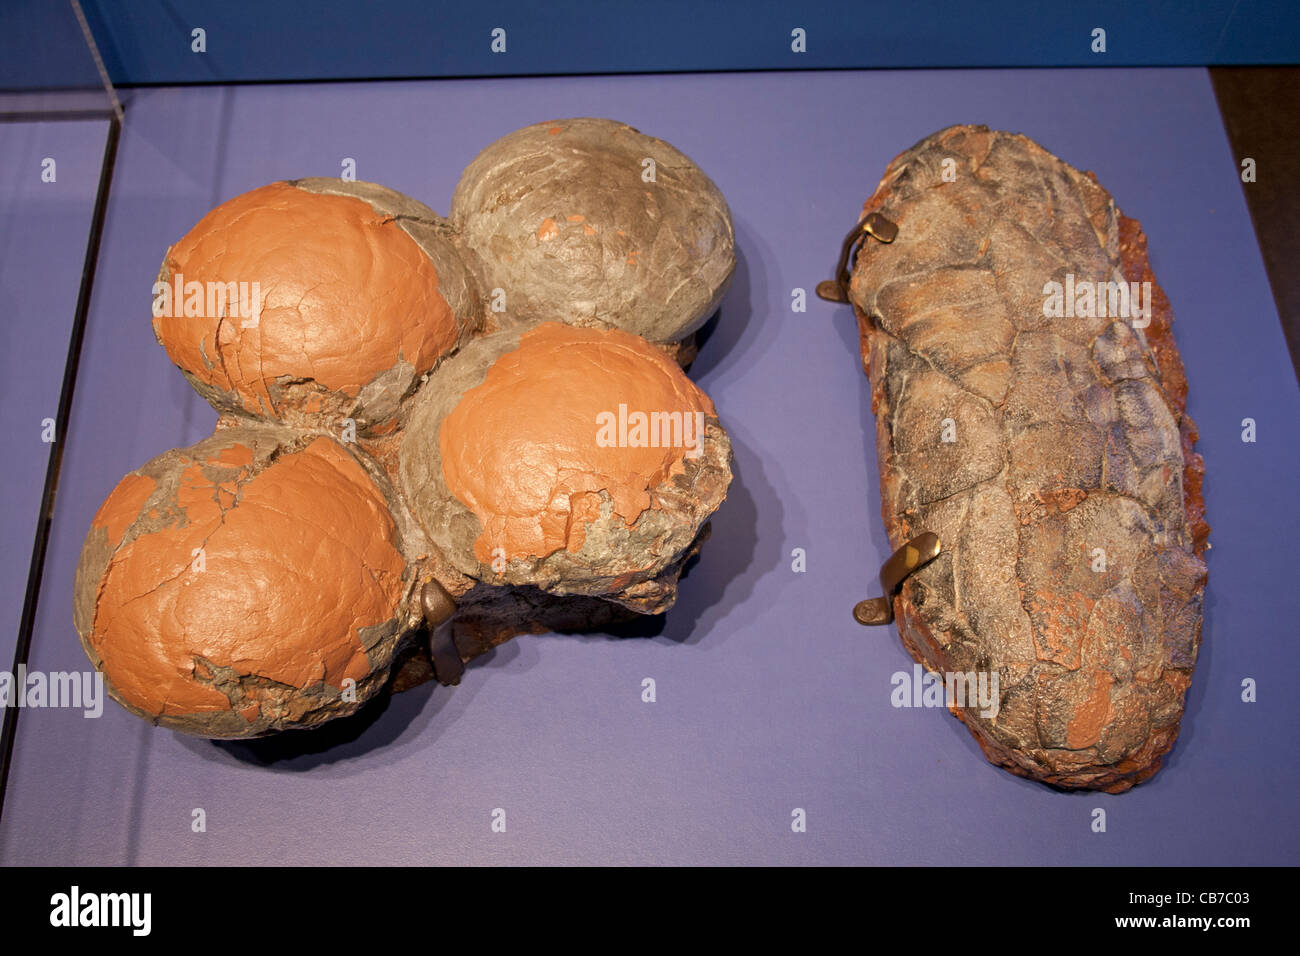 Dinosaur eggs, Dinosaur Hall, Natural History Museum, Los Angeles, California, USA - Stock Image